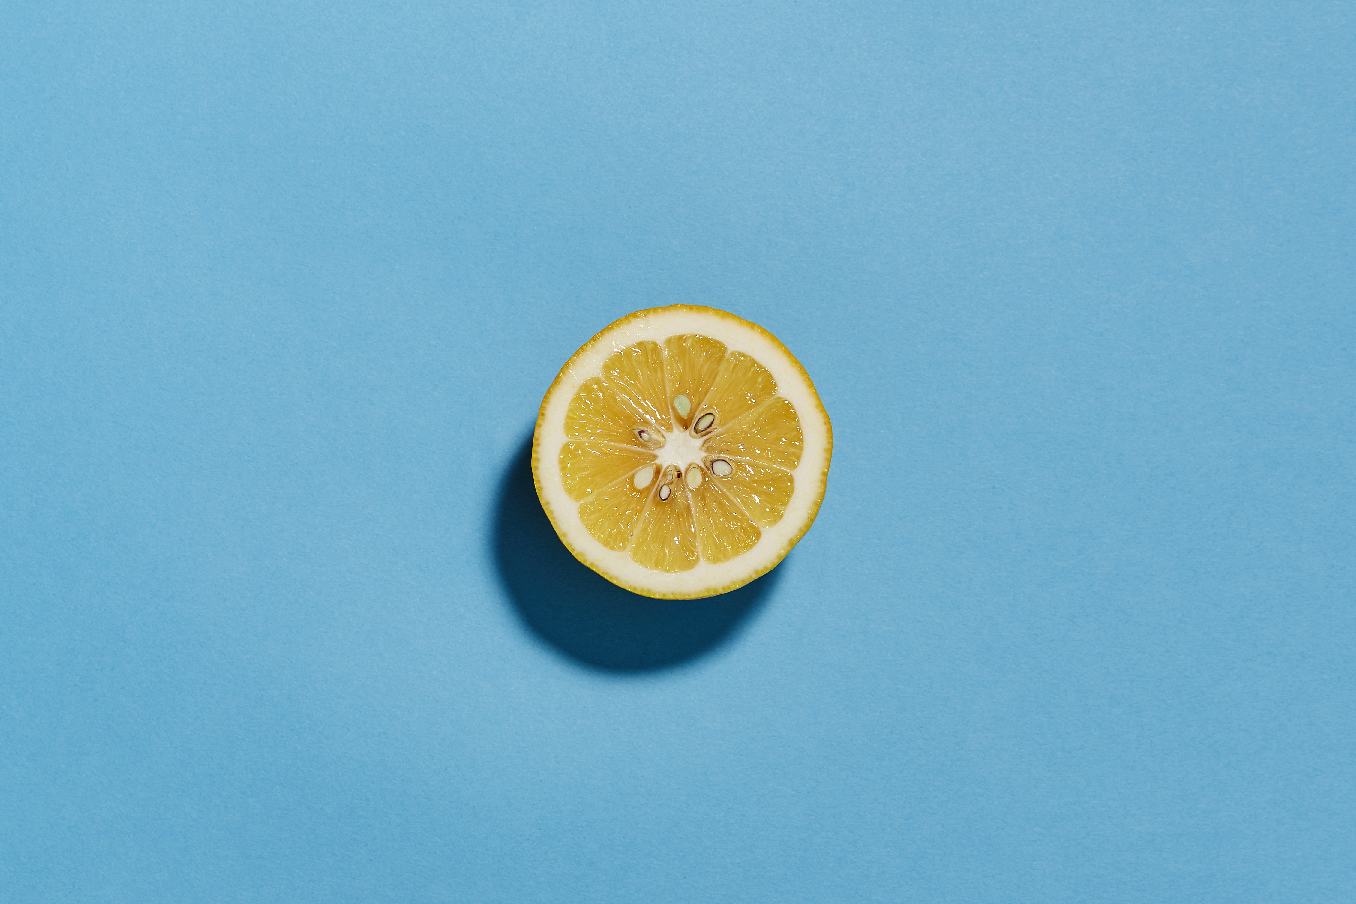 pickles-blog-lemon-on-blue-v1-FINAL.jpg